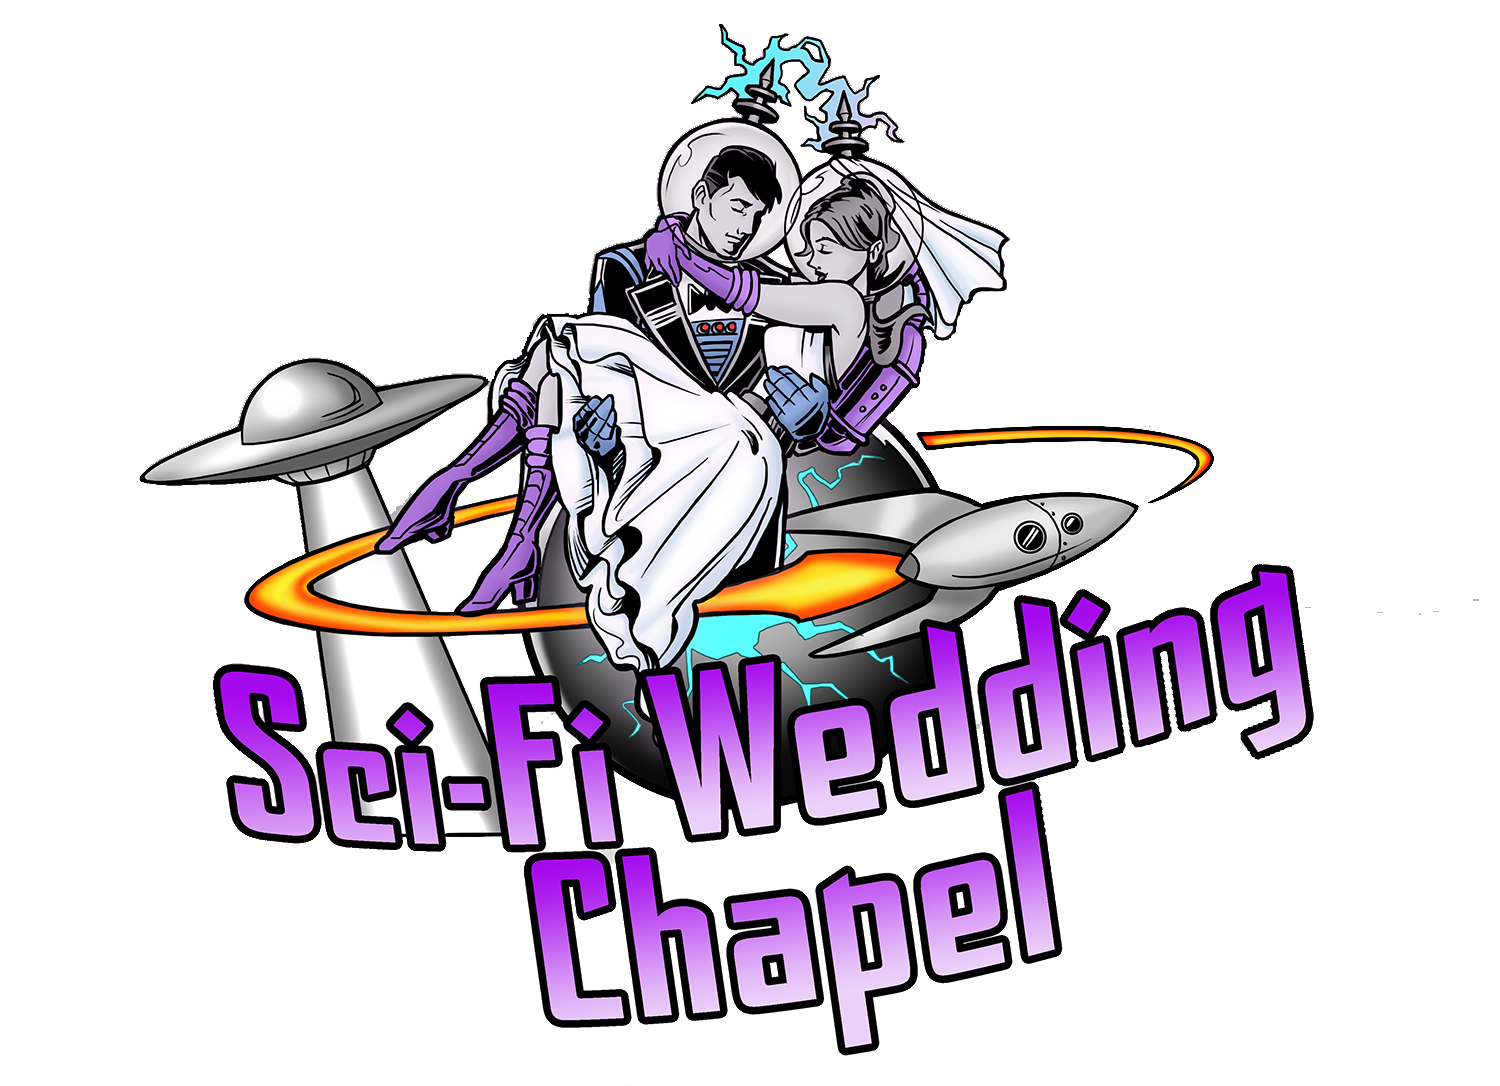 SCIFI WEDDING CHAPEL